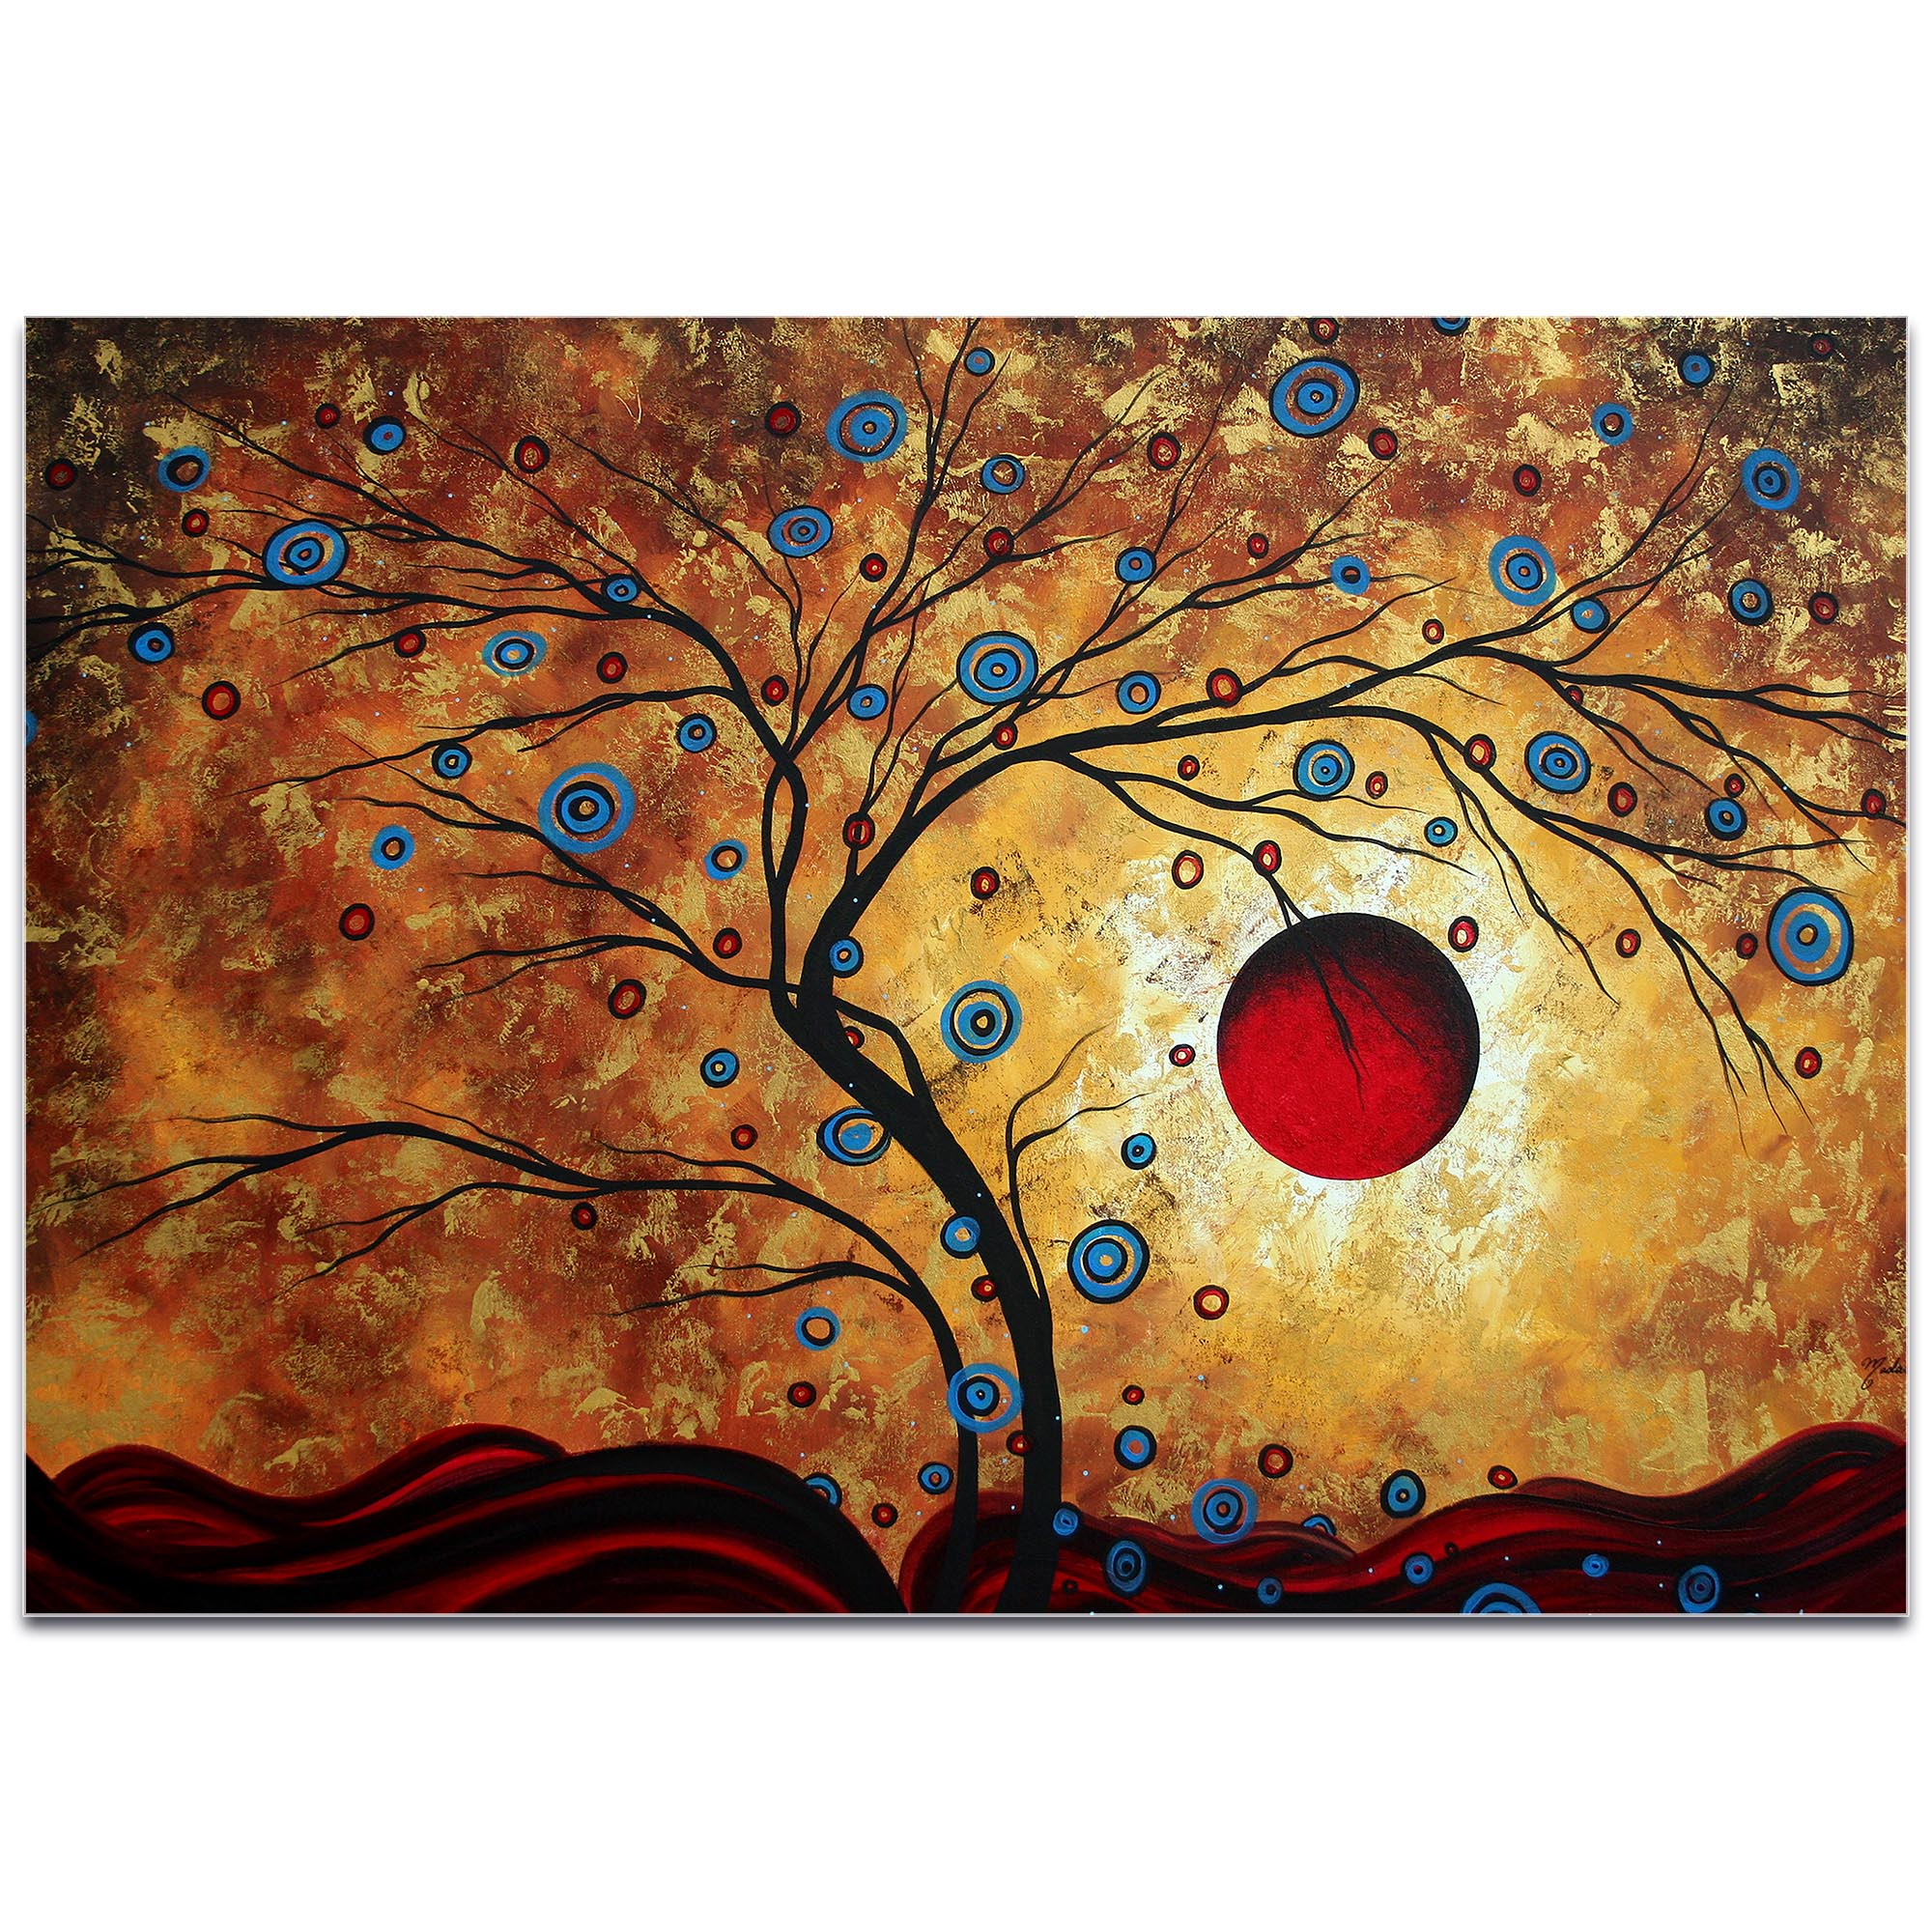 Landscape Painting 'Free as the Wind' - Abstract Tree Art on Metal or Acrylic - Image 2